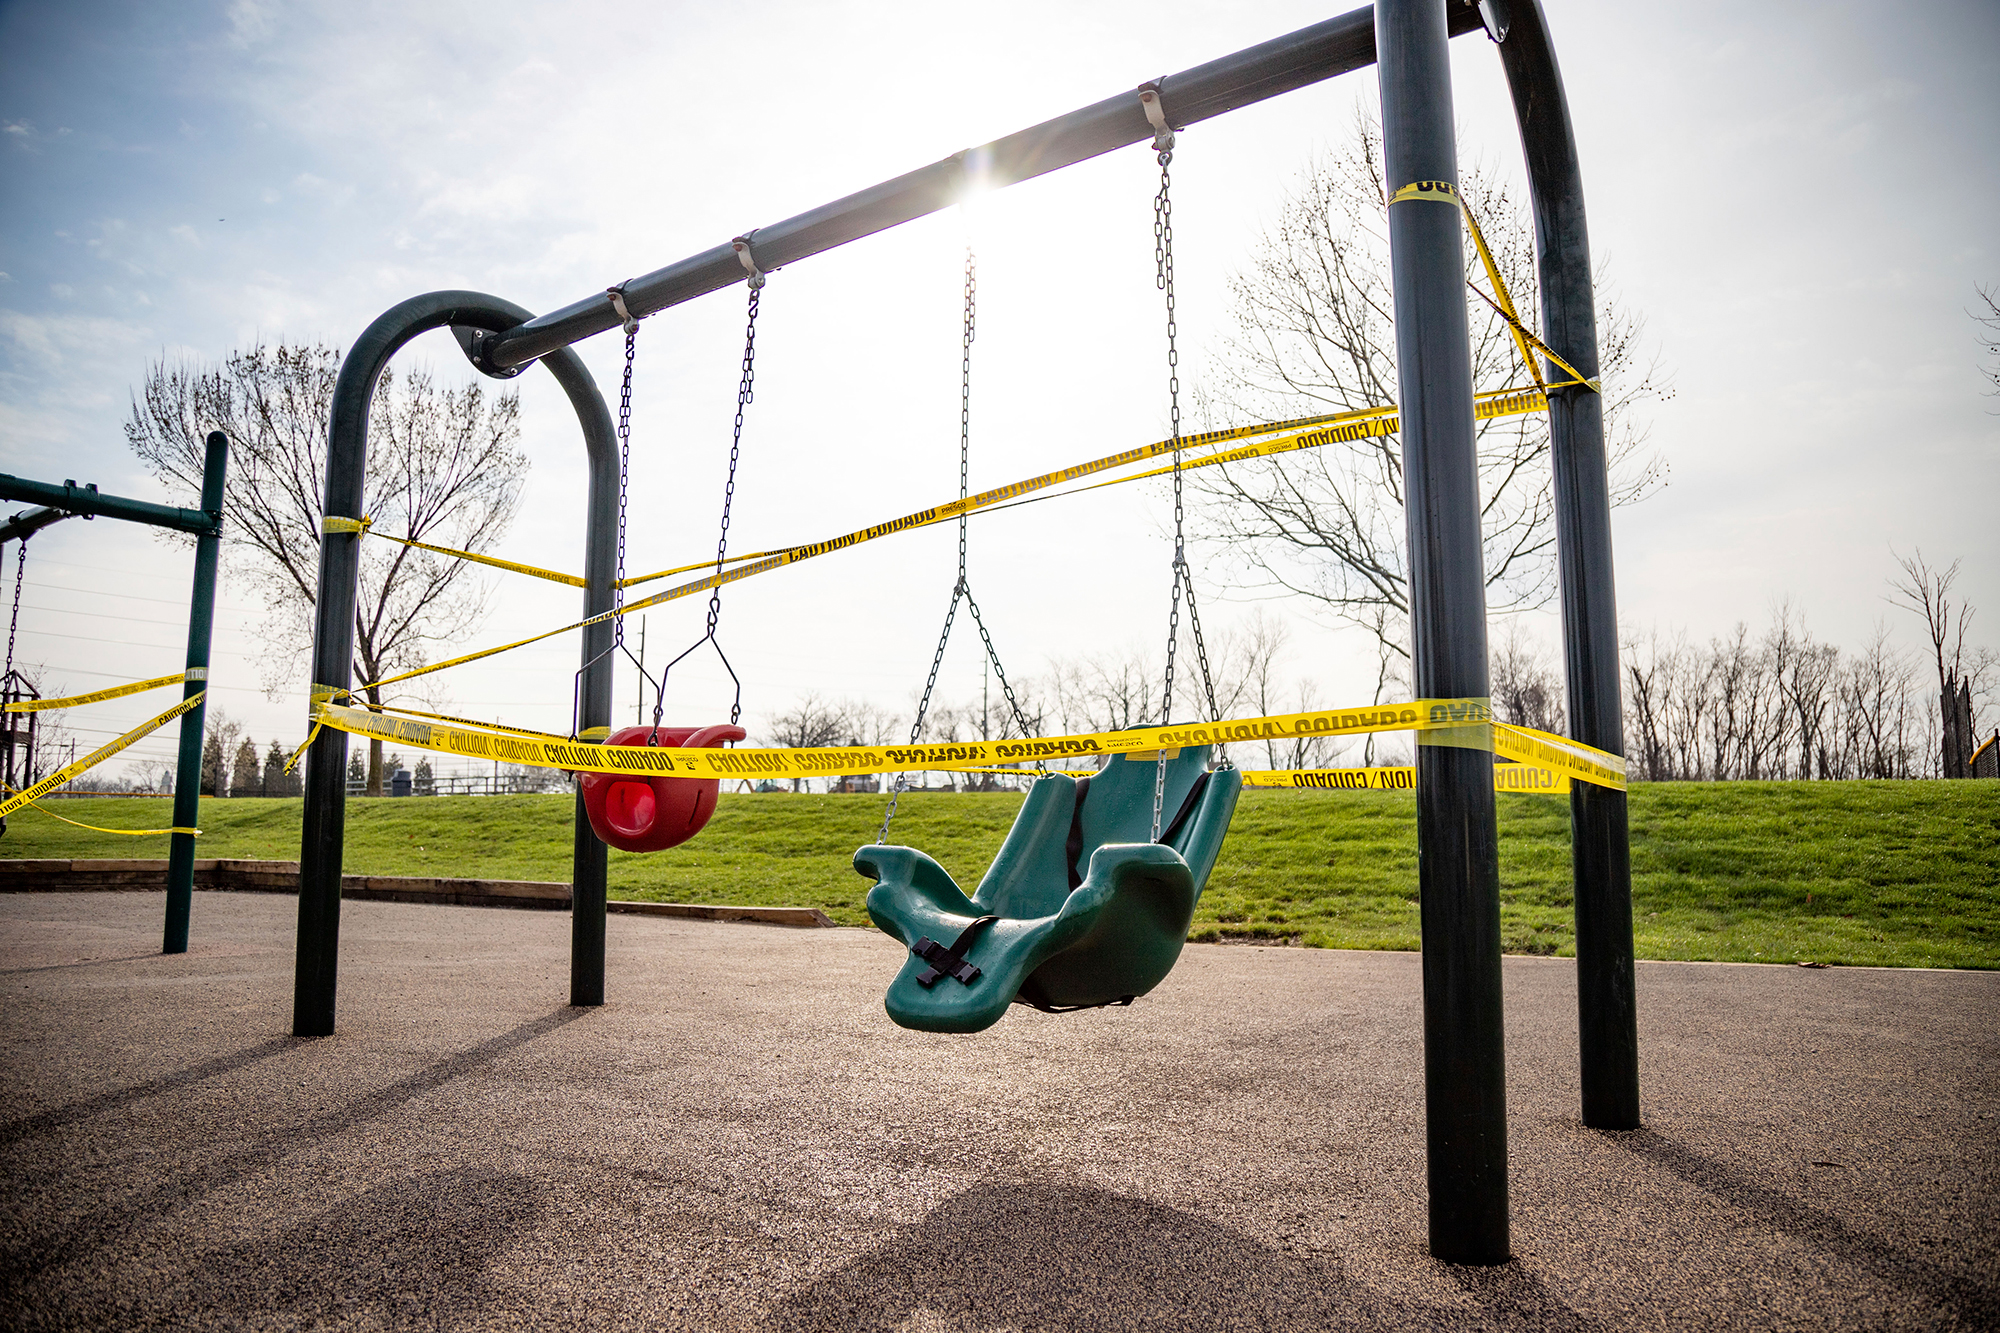 Playground equipment is cordoned off with yellow caution tape at the Veteran's Memorial Park on Harrison Avenue in Cincinnati, Ohio, in the wake of the coronavirus pandemic on Thursday, March 24.